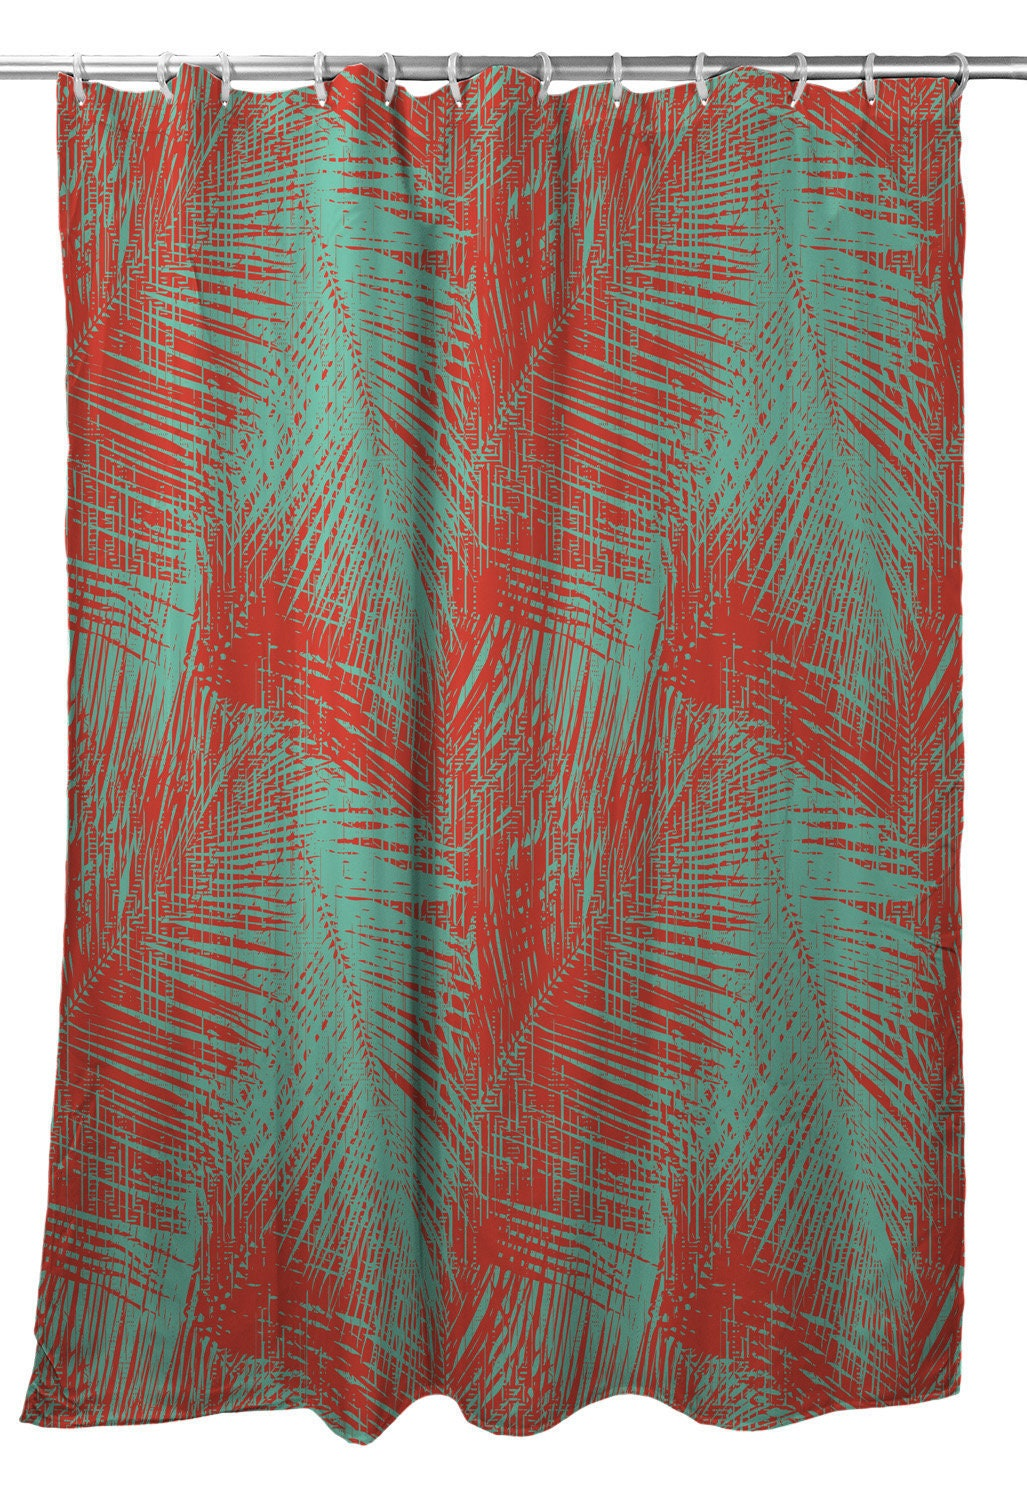 Walkers Cay Palm Breeze Shower Curtain Tropical